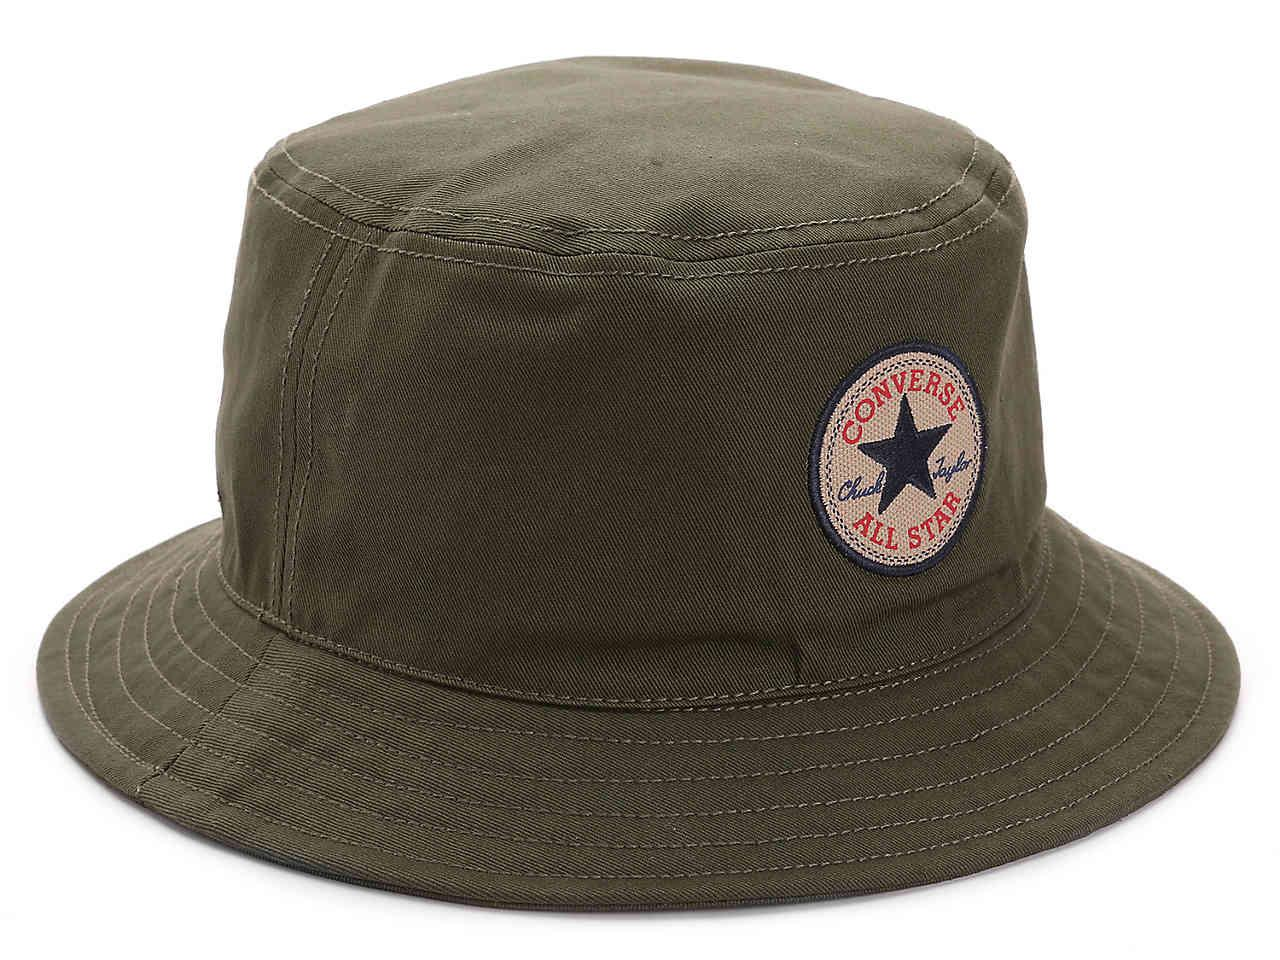 1c2a180fe89 Lyst - Converse Classic Bucket Hat in Green for Men